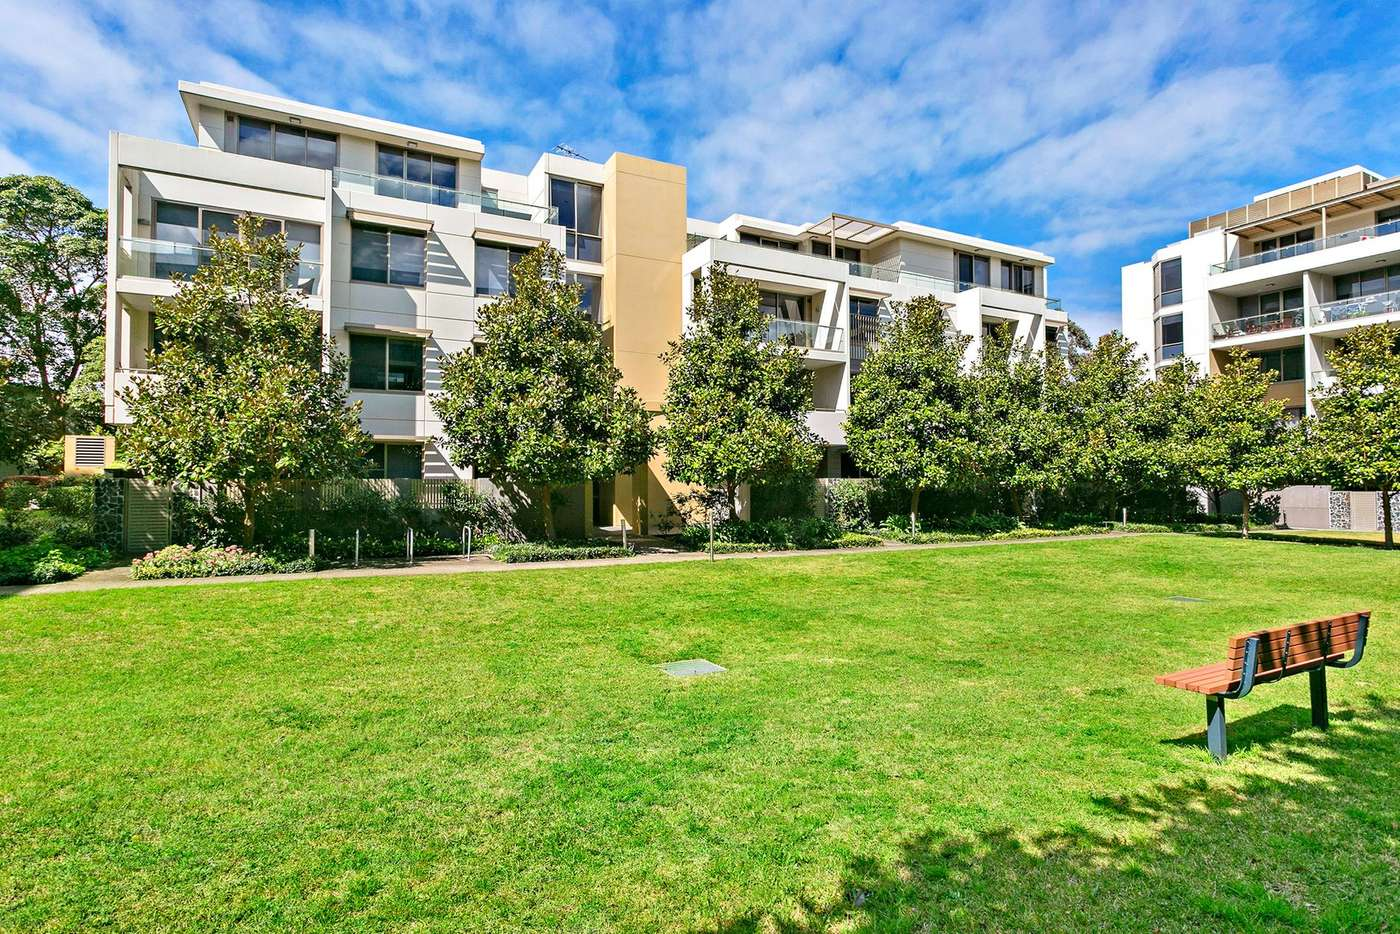 Main view of Homely unit listing, 206/132-138 Killeaton Street, St Ives NSW 2075